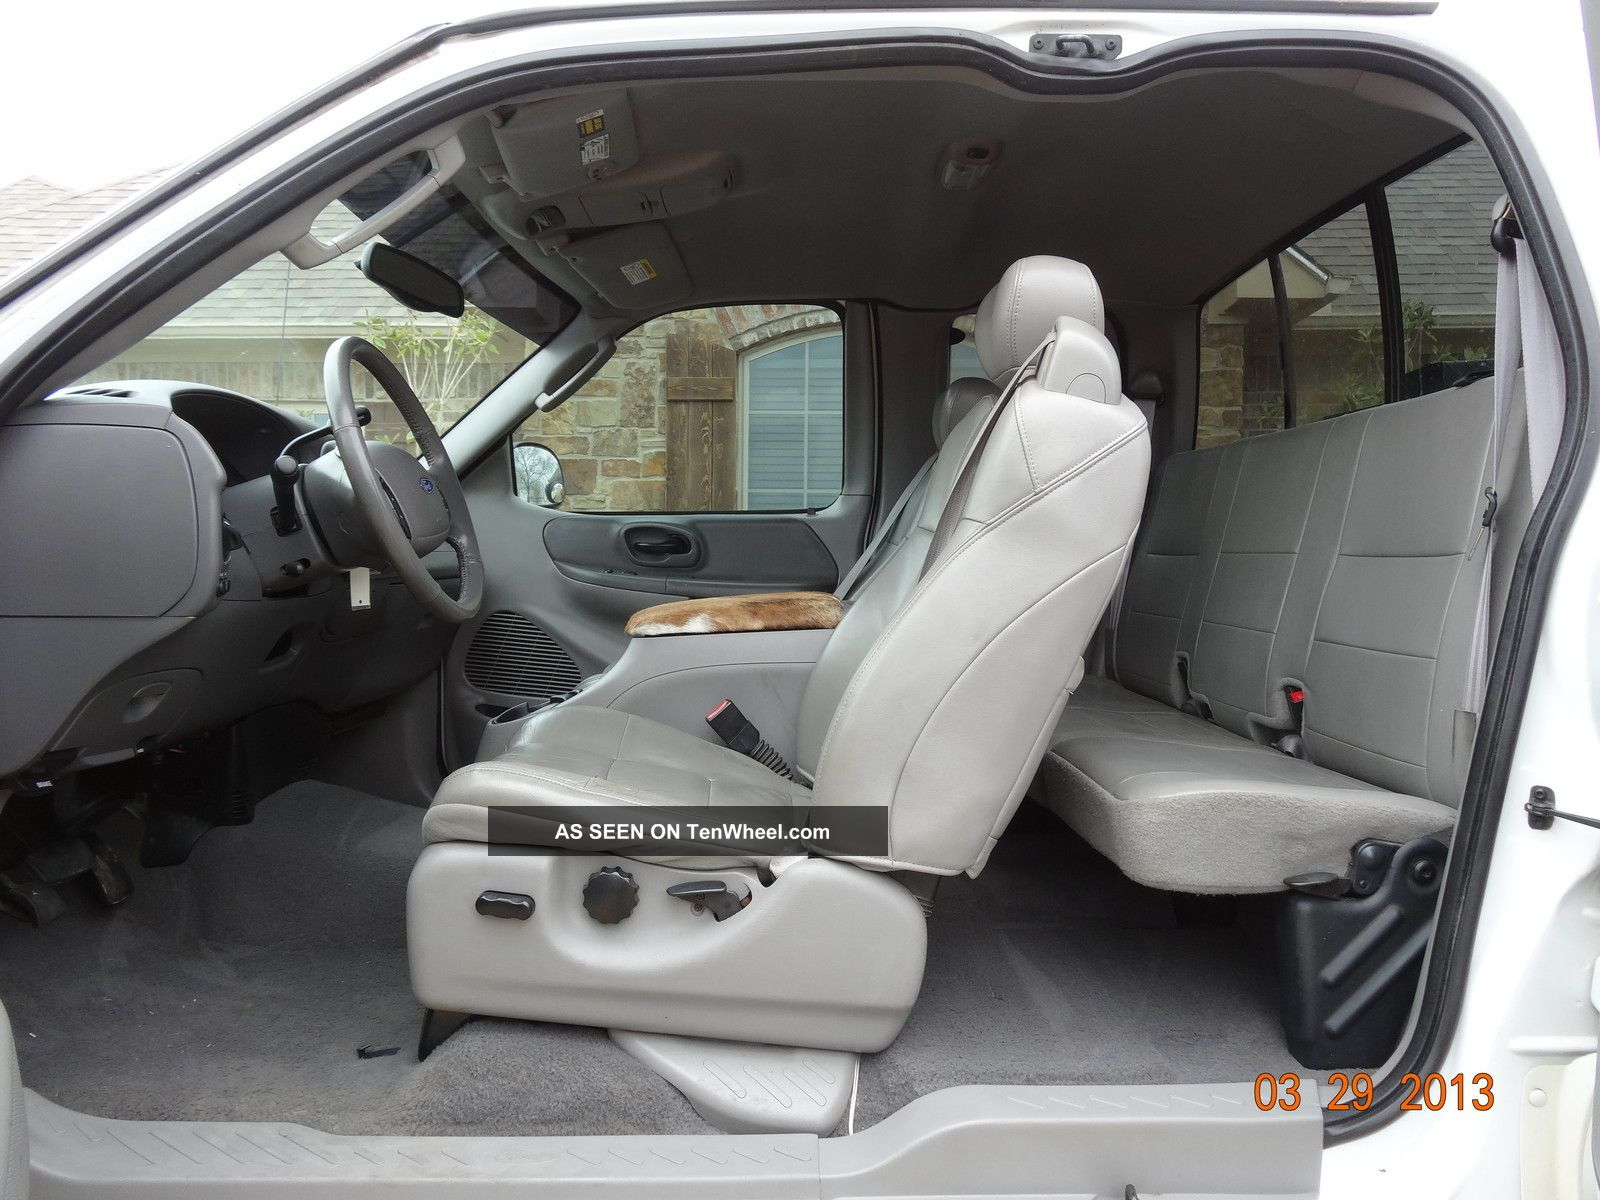 2003 ford f 150 supercrew 4x4 139 in wb lariat styleside html autos weblog. Black Bedroom Furniture Sets. Home Design Ideas